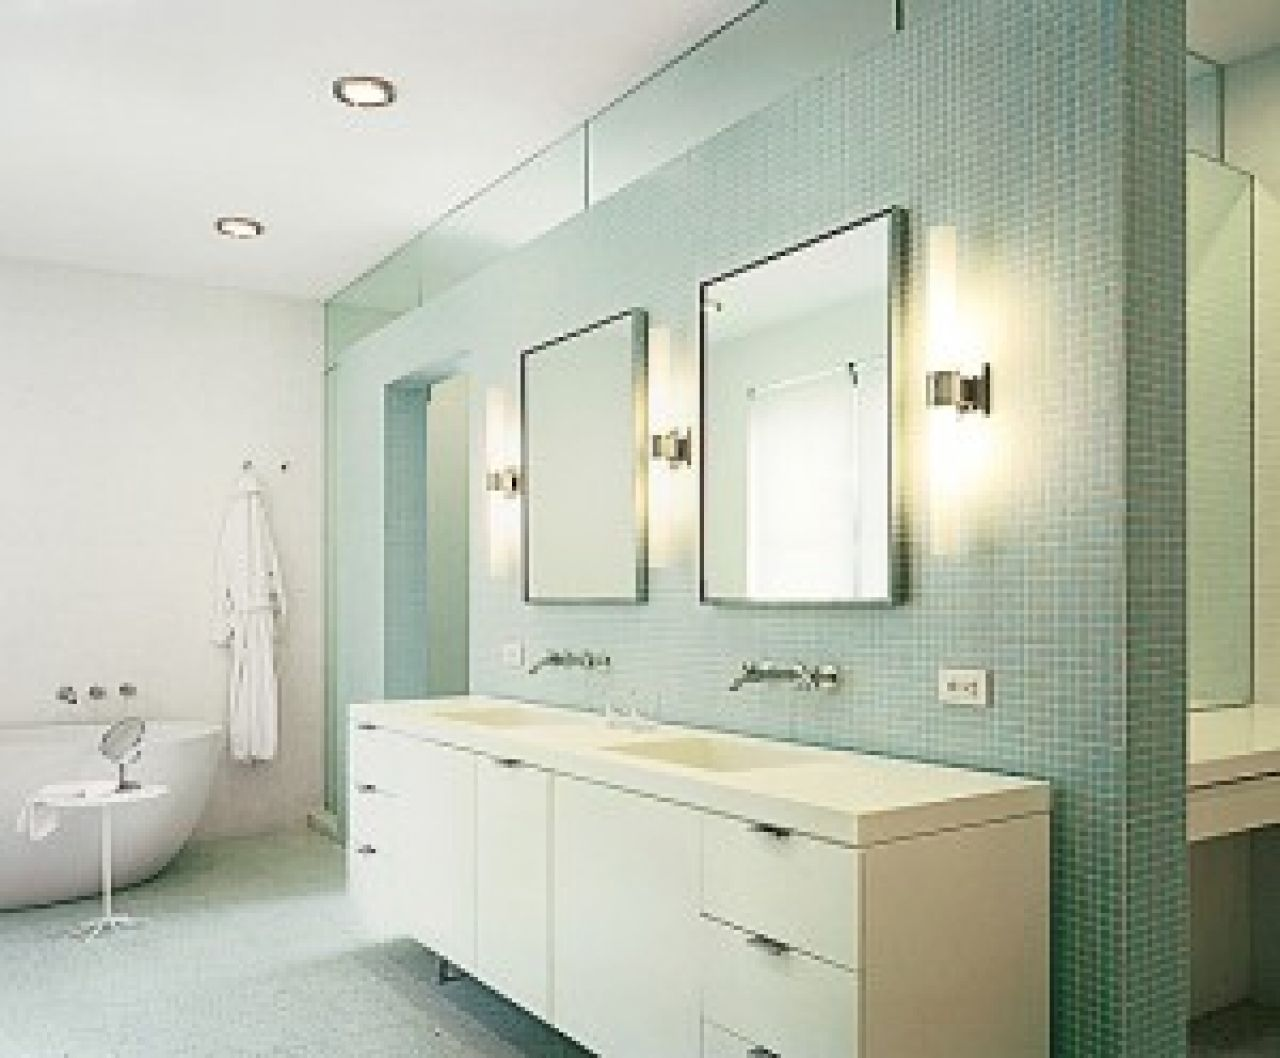 Bathroom Lights On Sale bathroom lighting ideas for vanity | bathroom vanity lighting